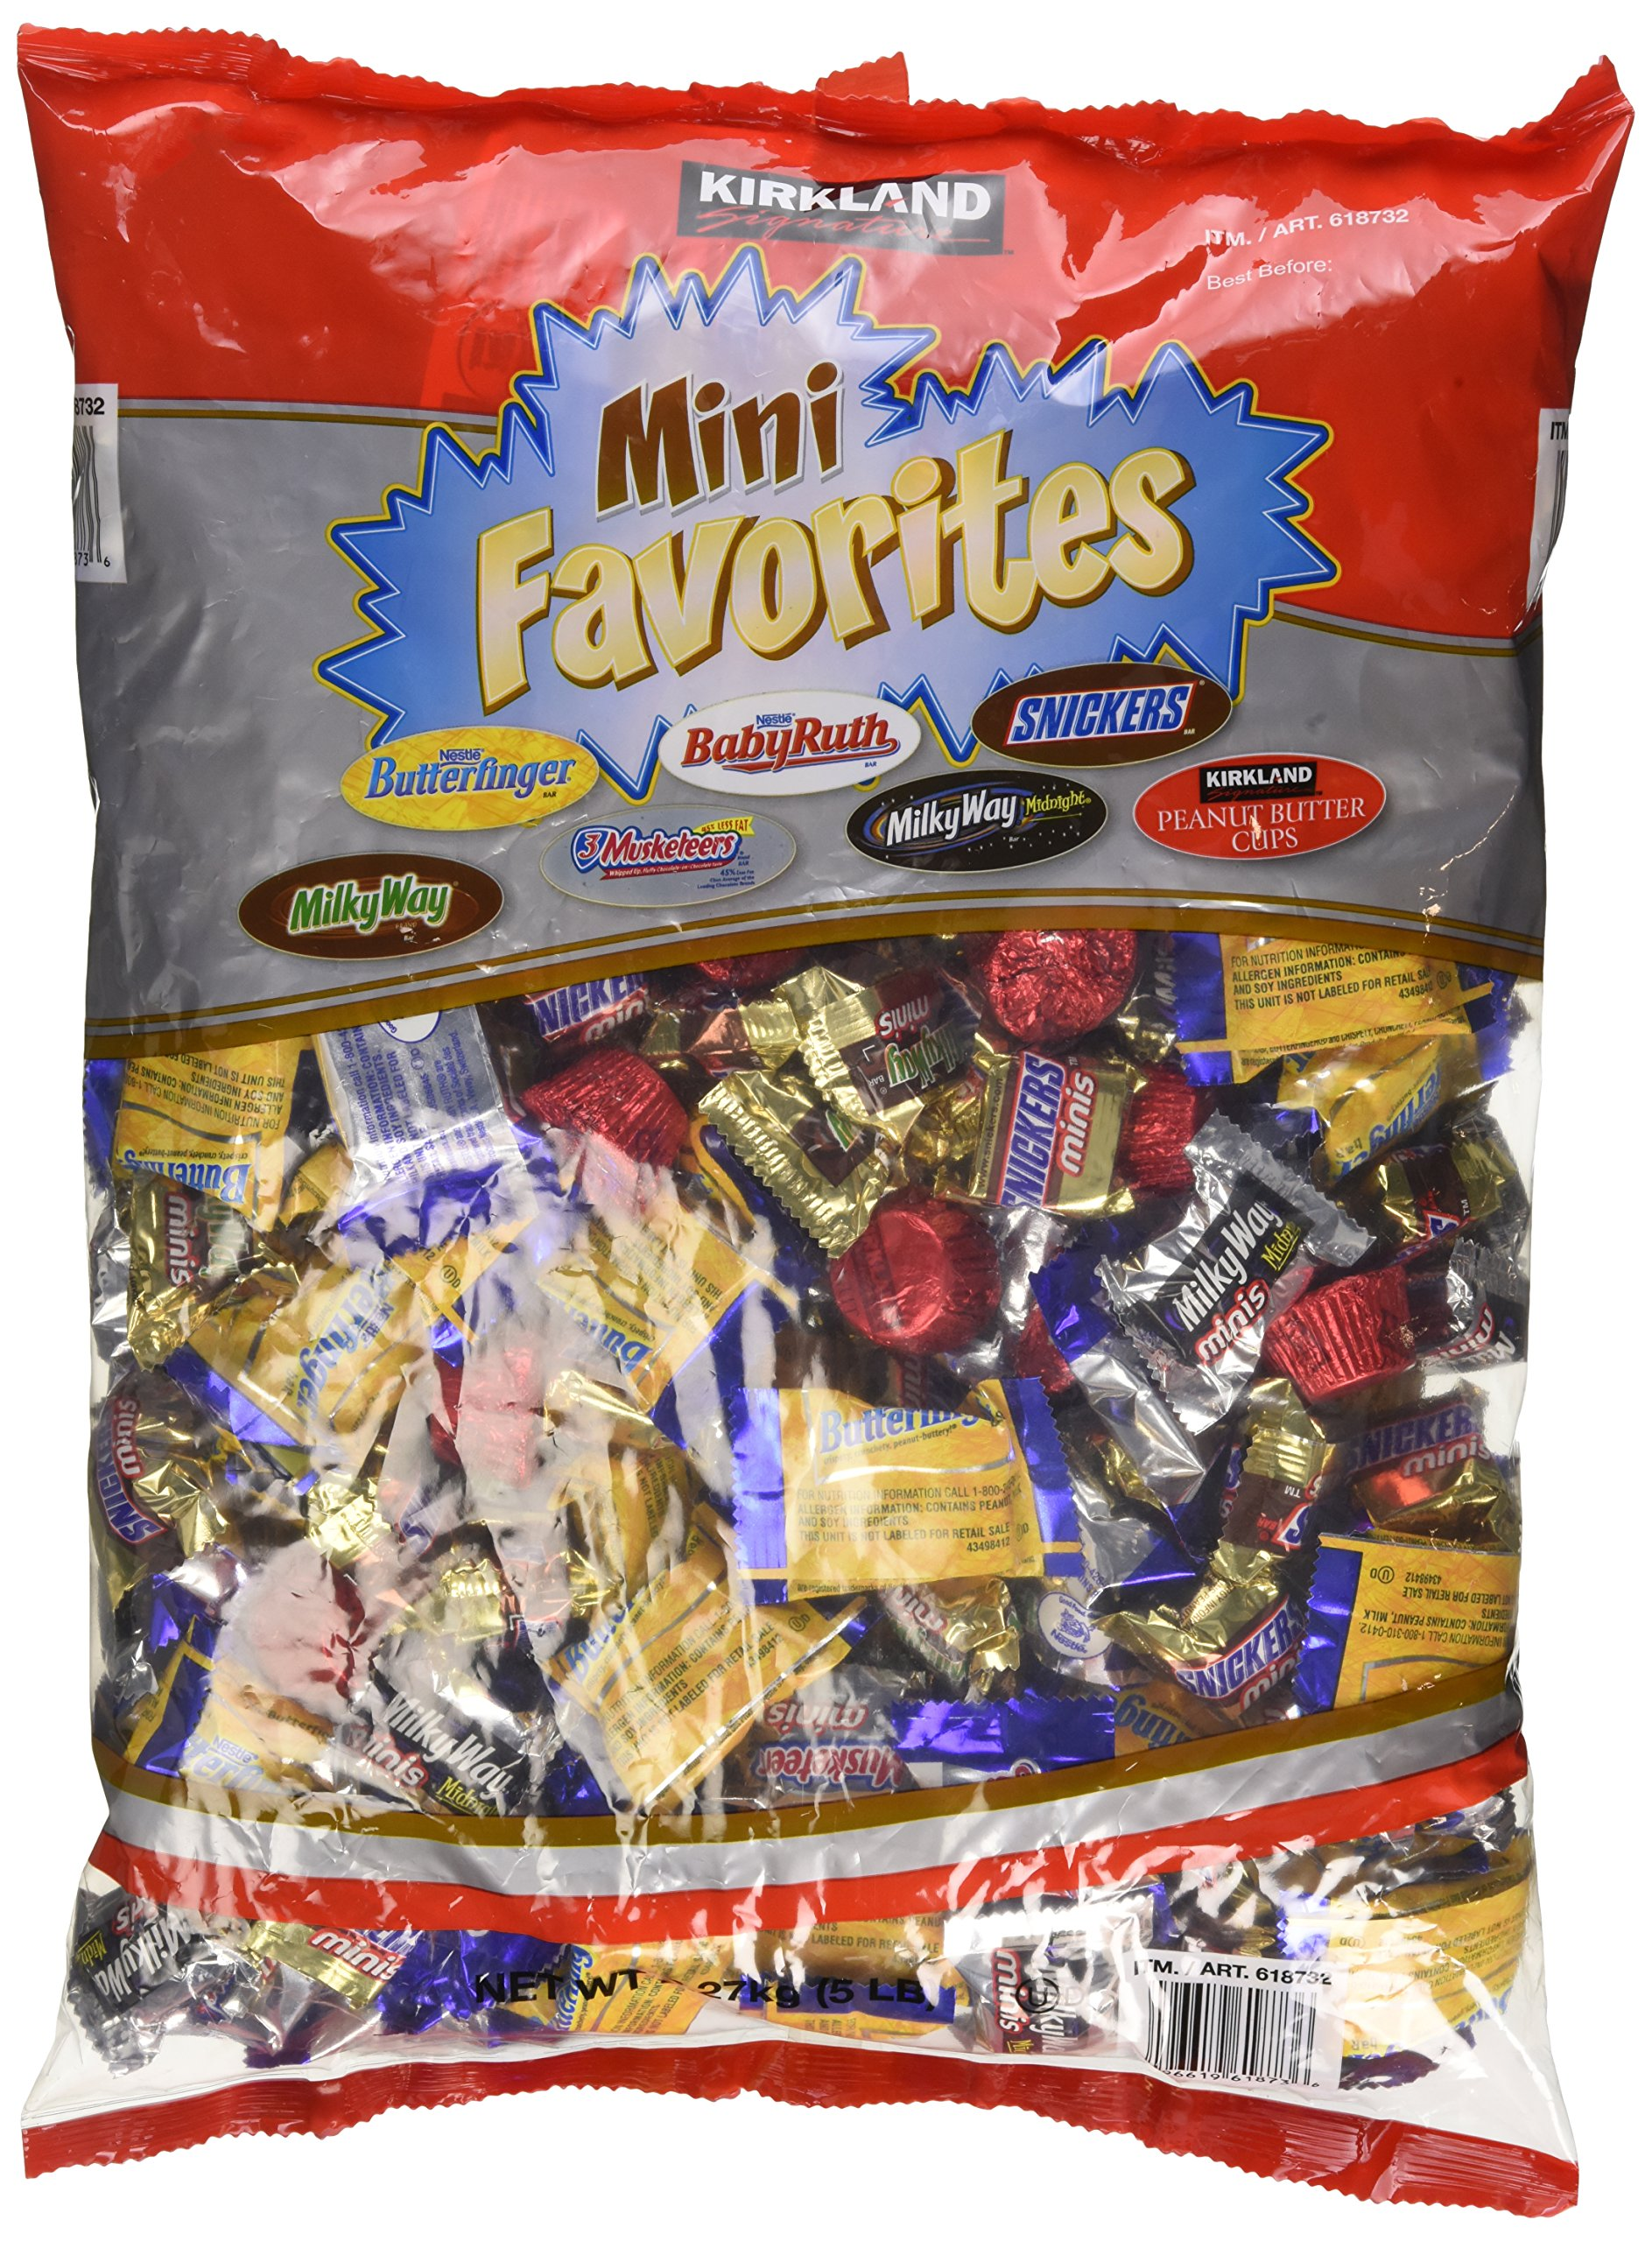 Chocolate Mini Favorites Candies 5 lb Bag by Kirkland Signature